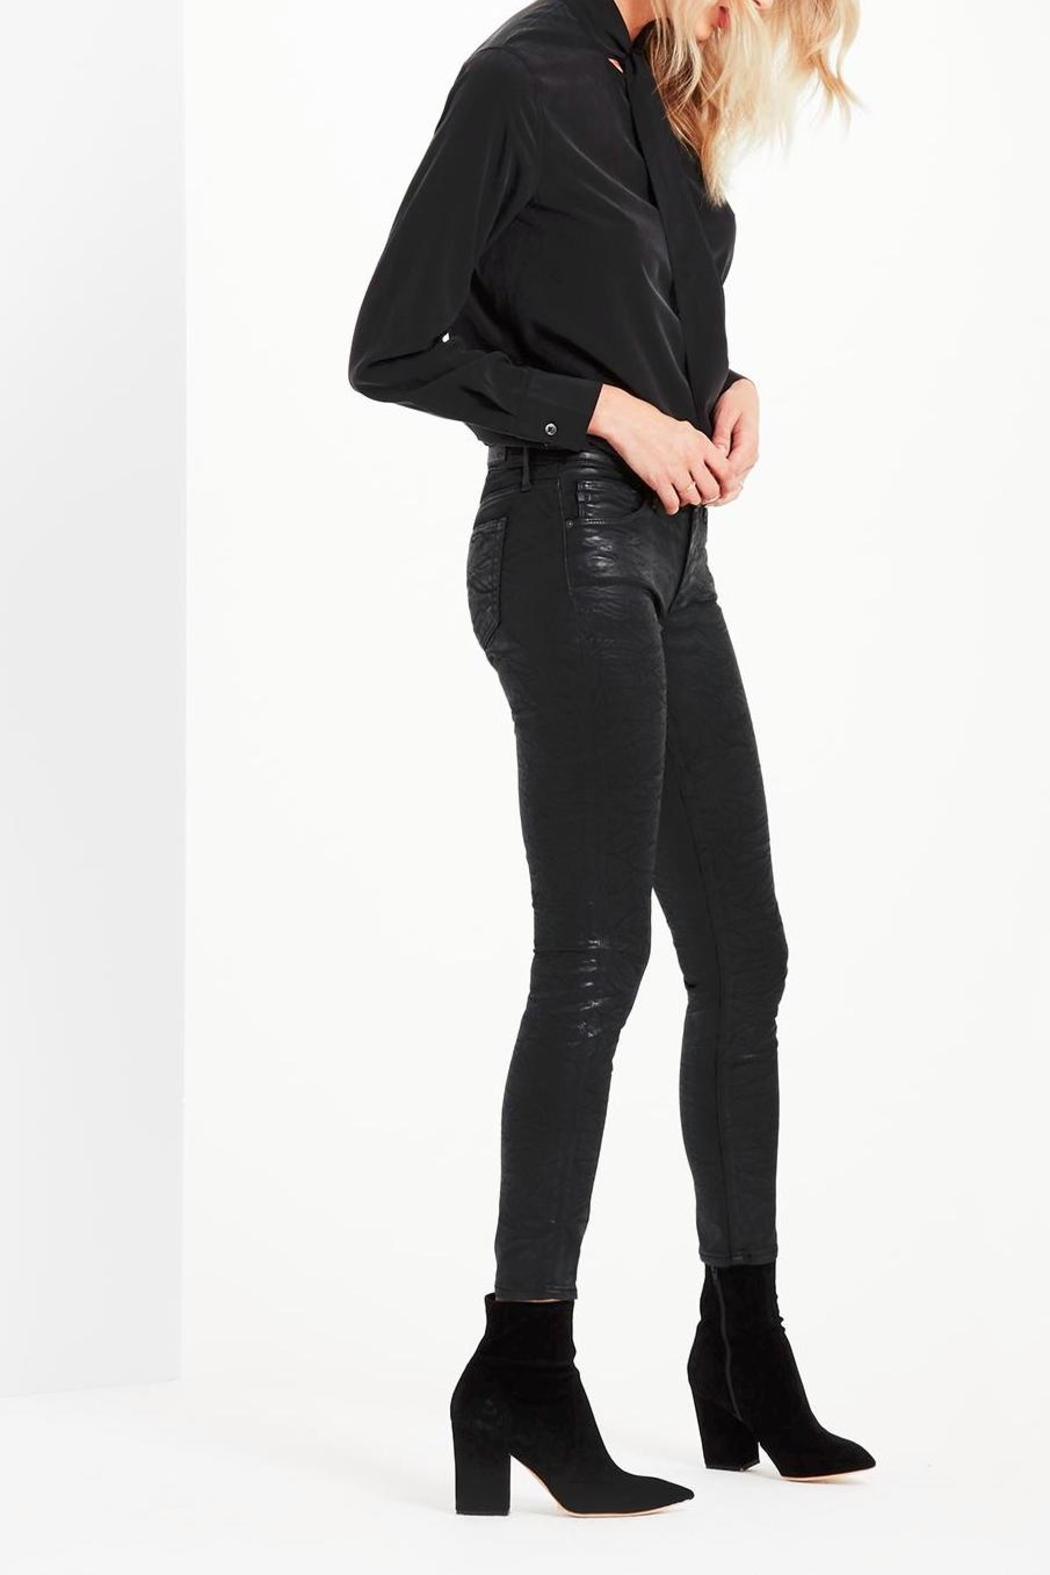 AG Adriano Goldschmied Legging-Ankle Crackle Leatherette - Front Full Image